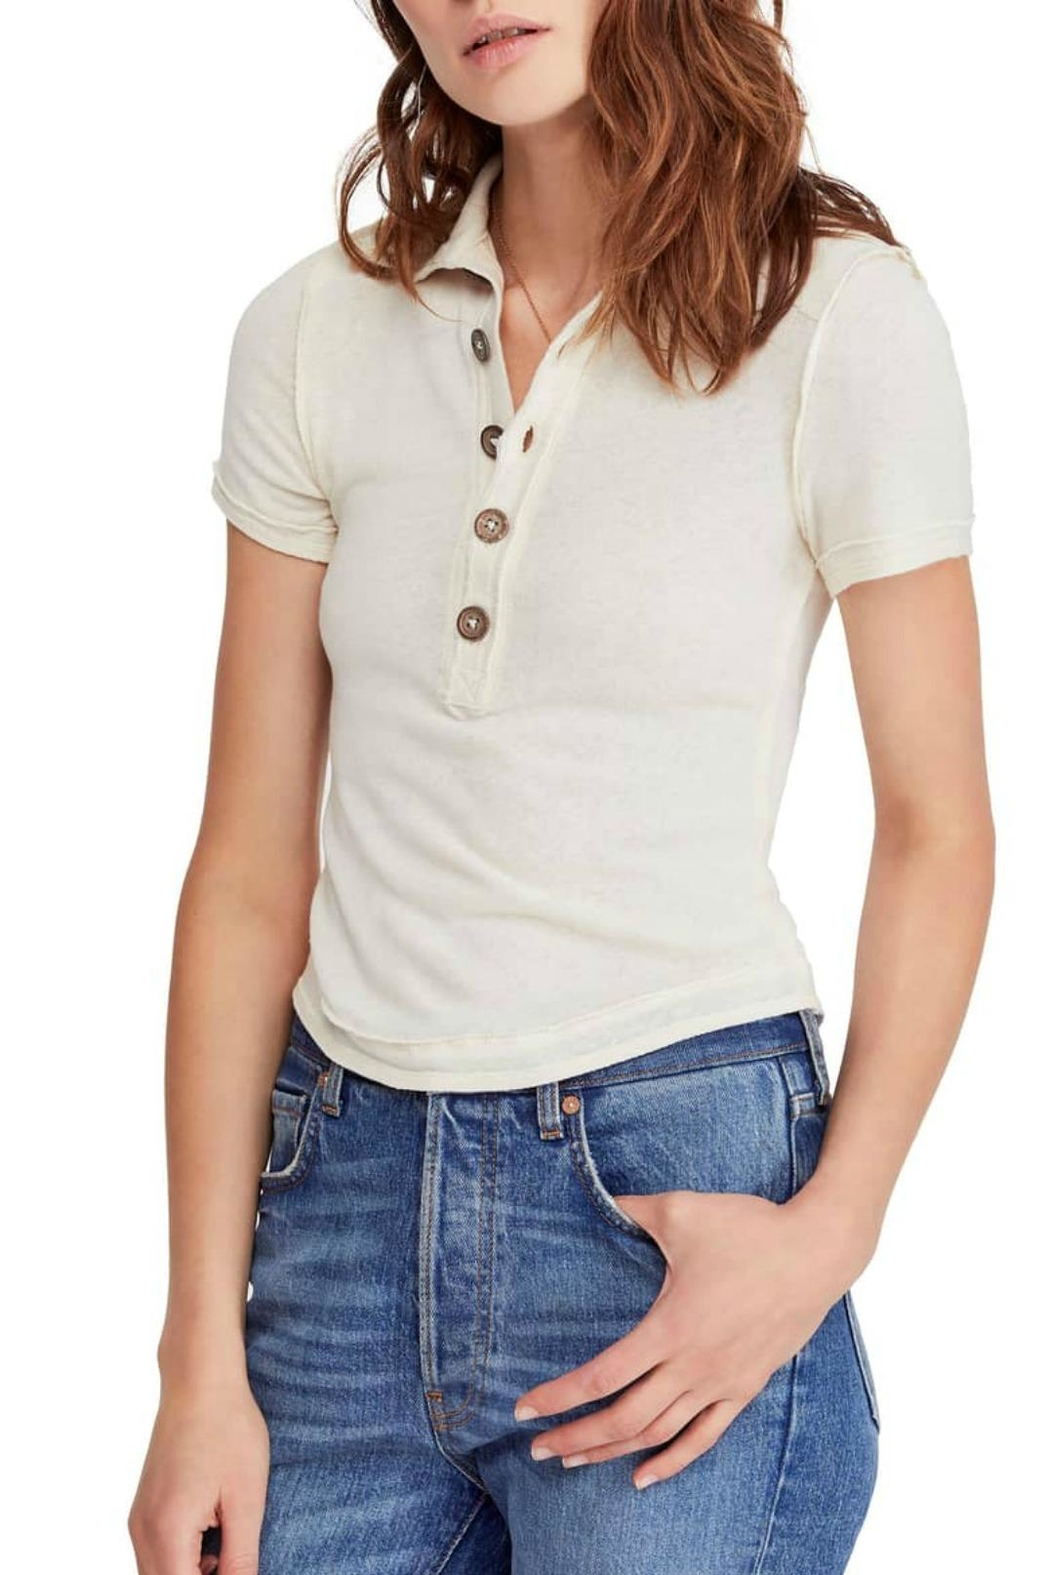 ab17a2ef933 Free People Poppy Polo from Orange County by Jeanni Champagne ...